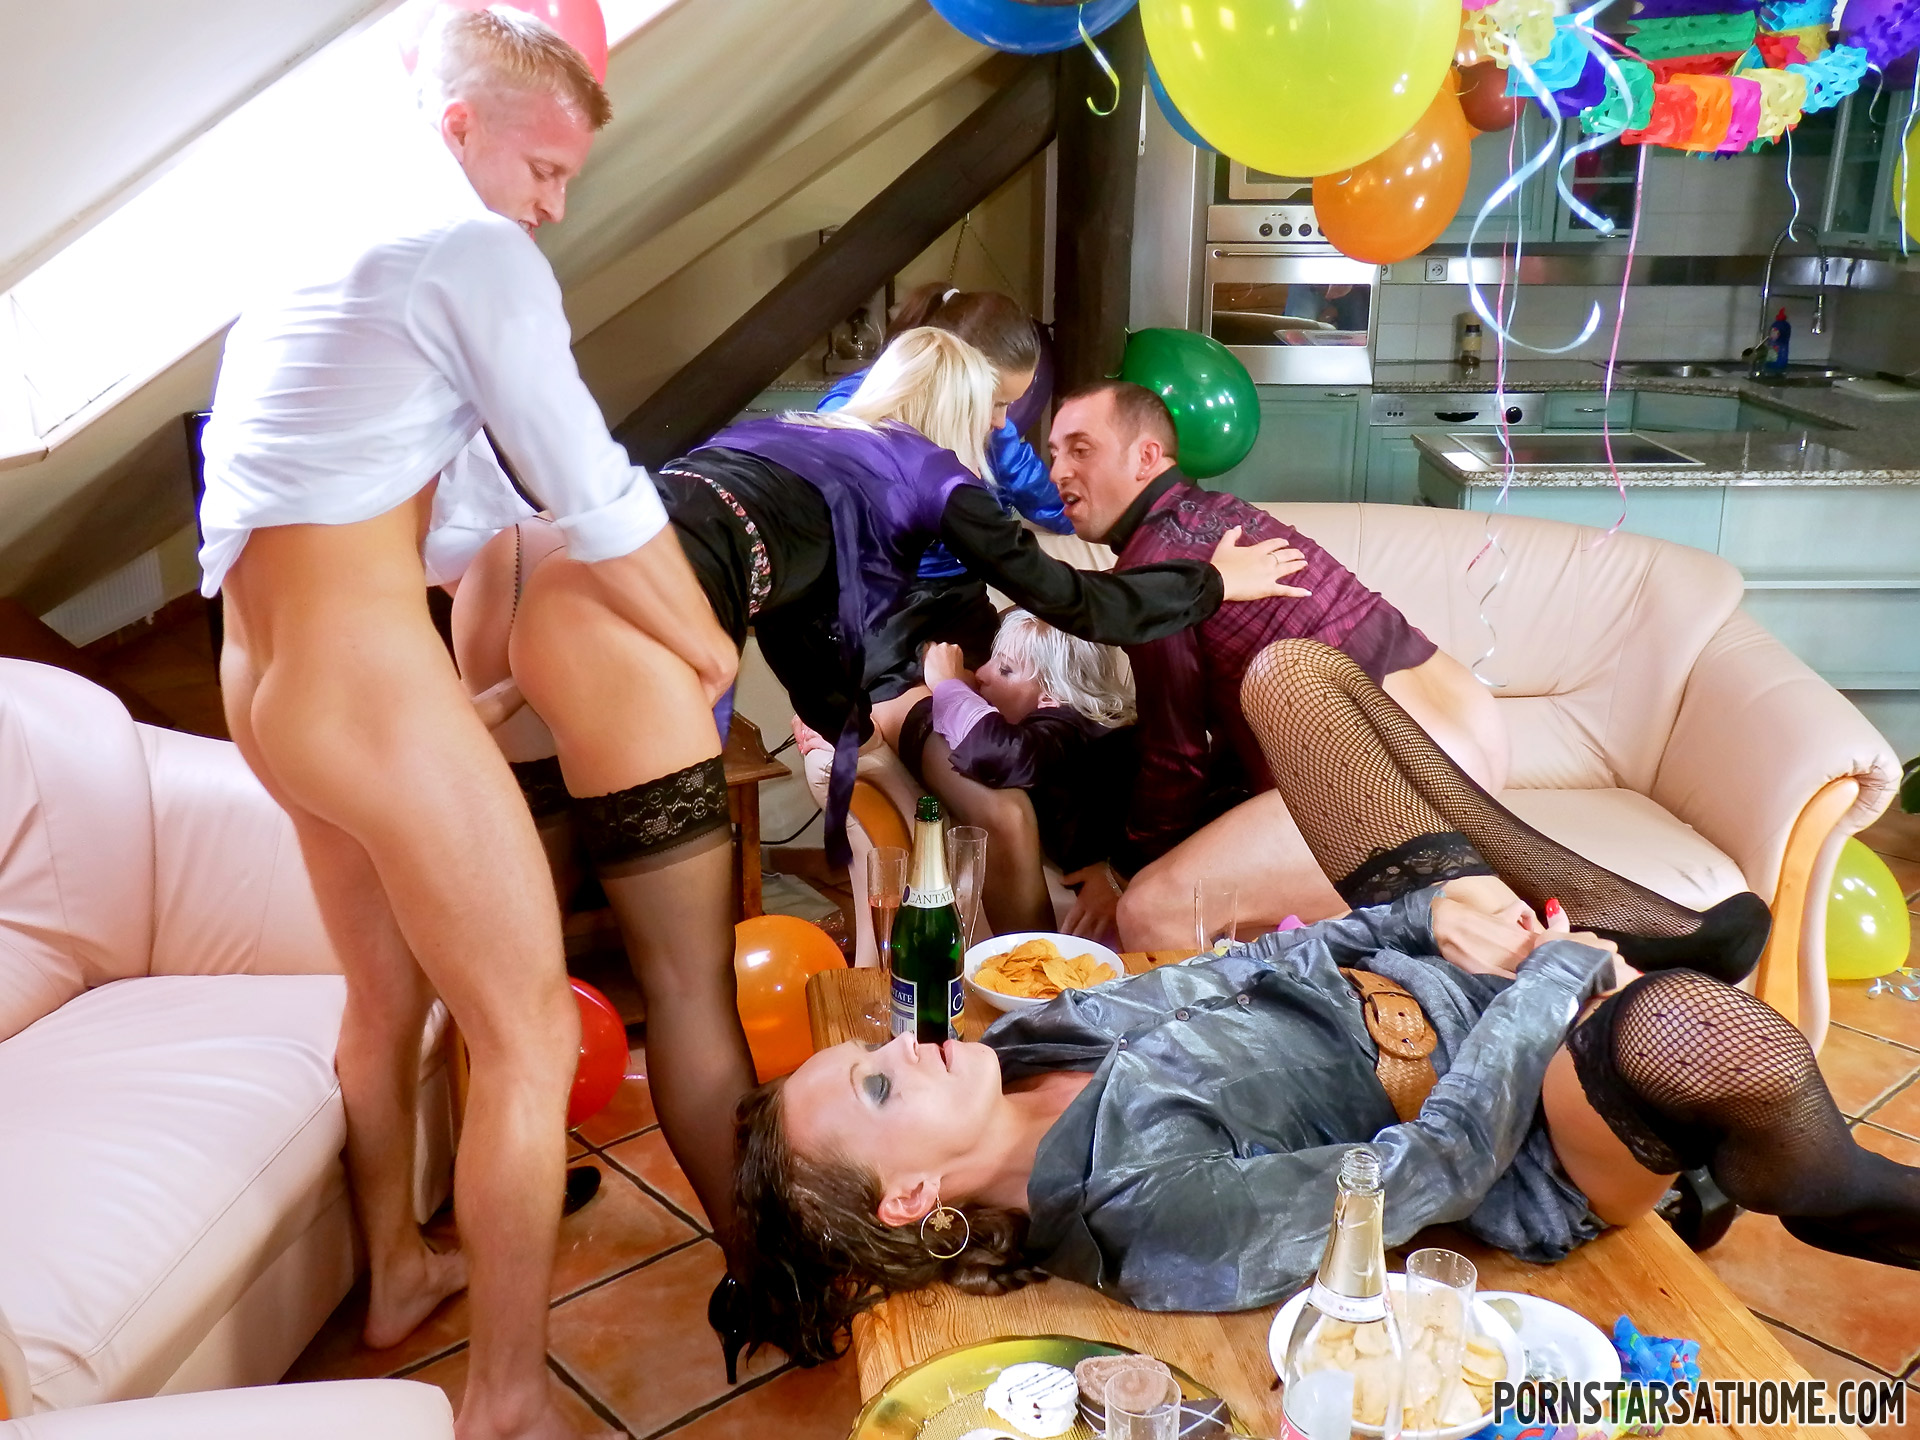 Chicks at a horny birthday party - Mobile Porn Movies